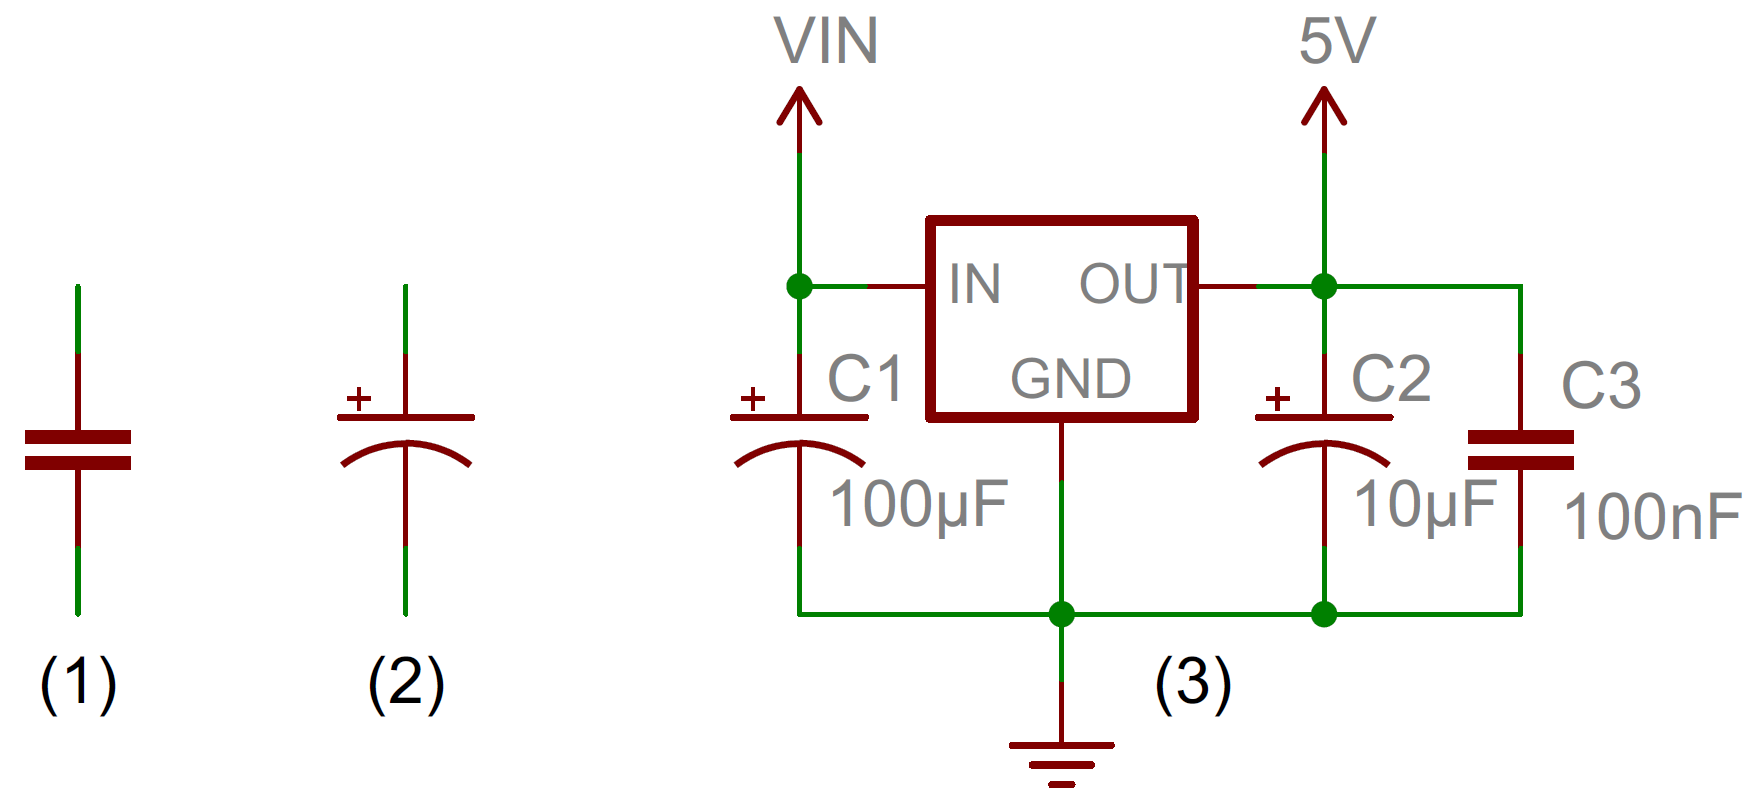 Capacitors Circuit Diagram Online Of Ups 500w 2 Capacitor Symbols